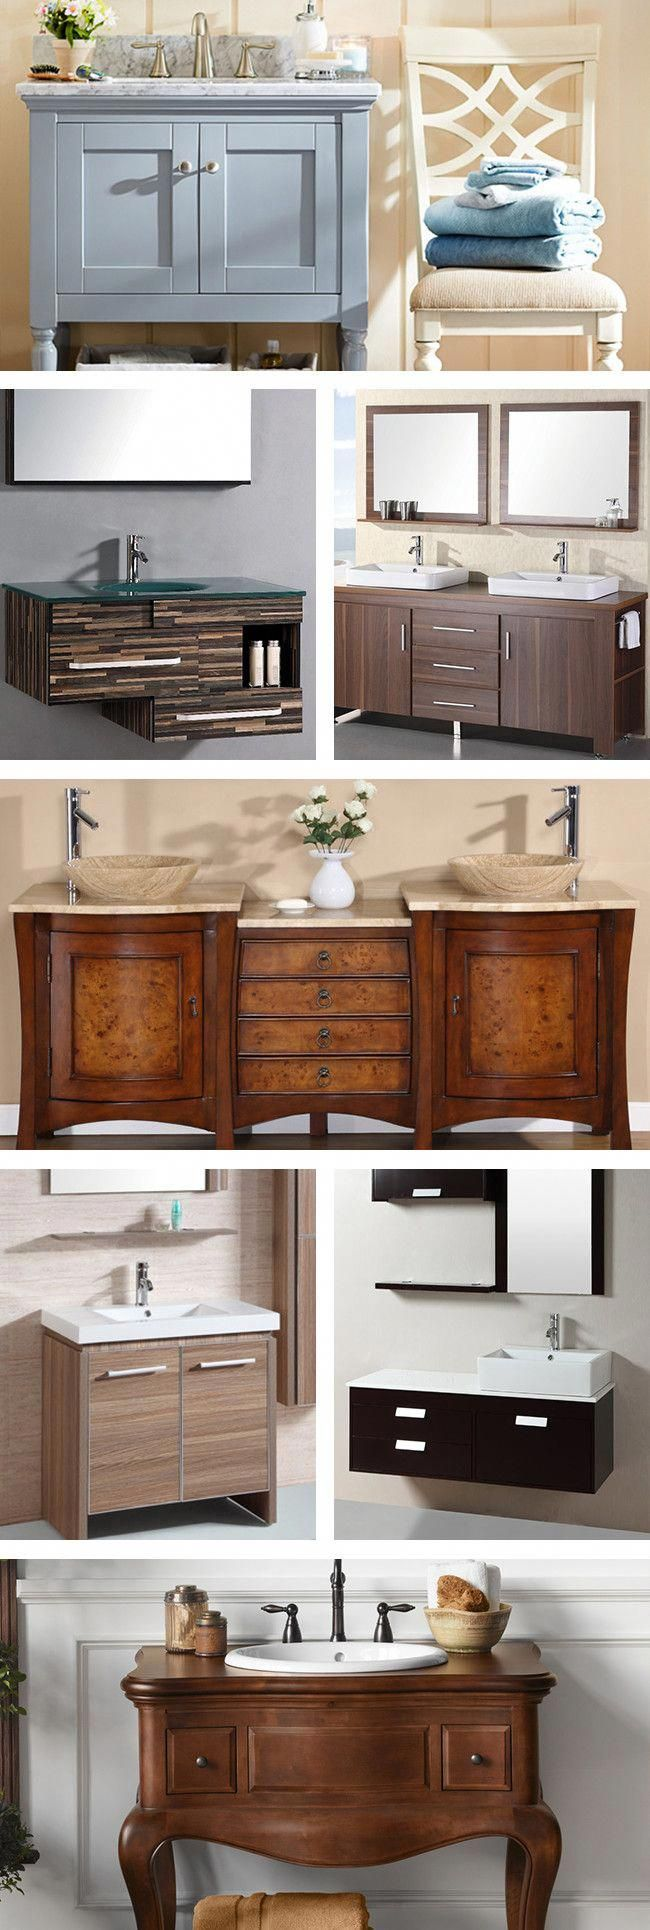 Purchasing a bathroom vanity for your home can help you redesign